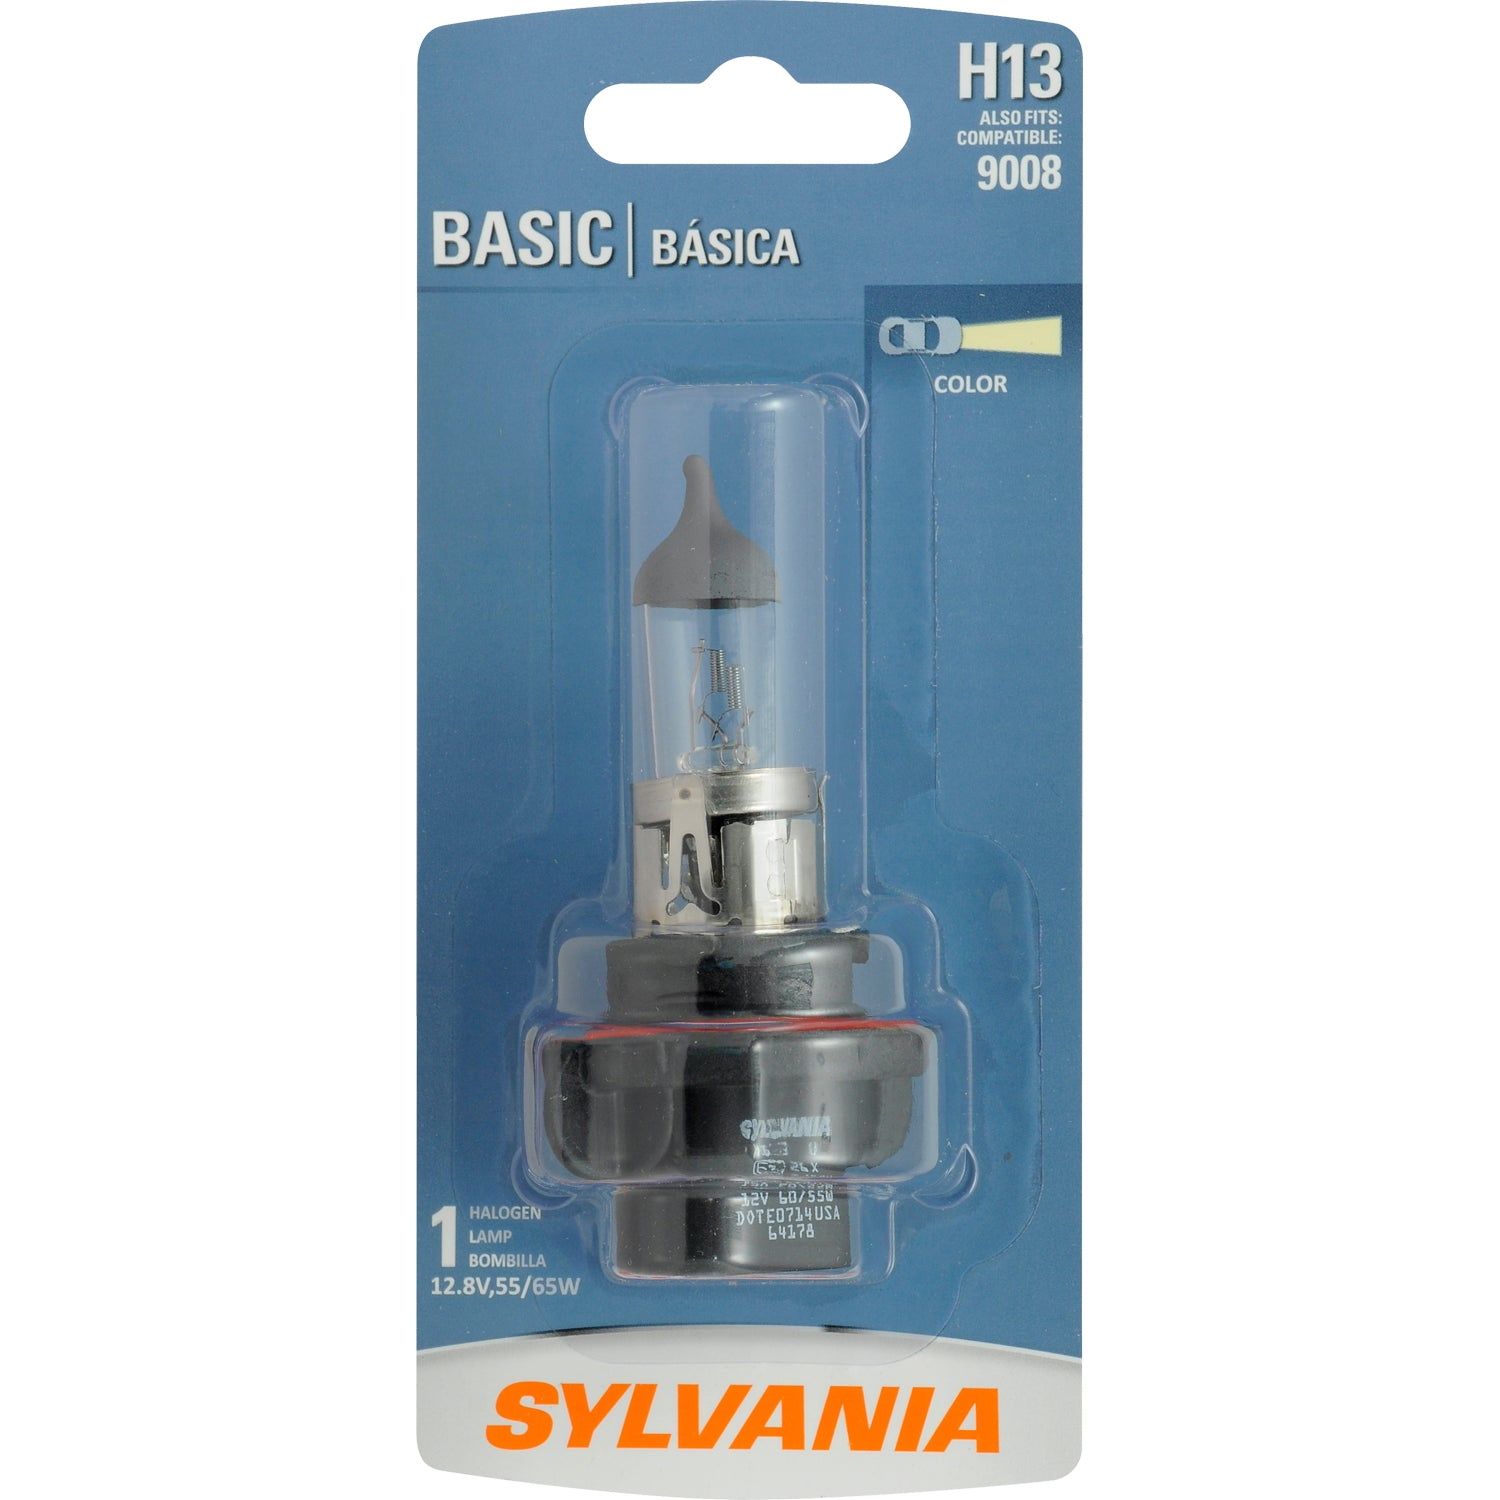 SYLVANIA H13 Basic Halogen Headlight Automotive Bulb